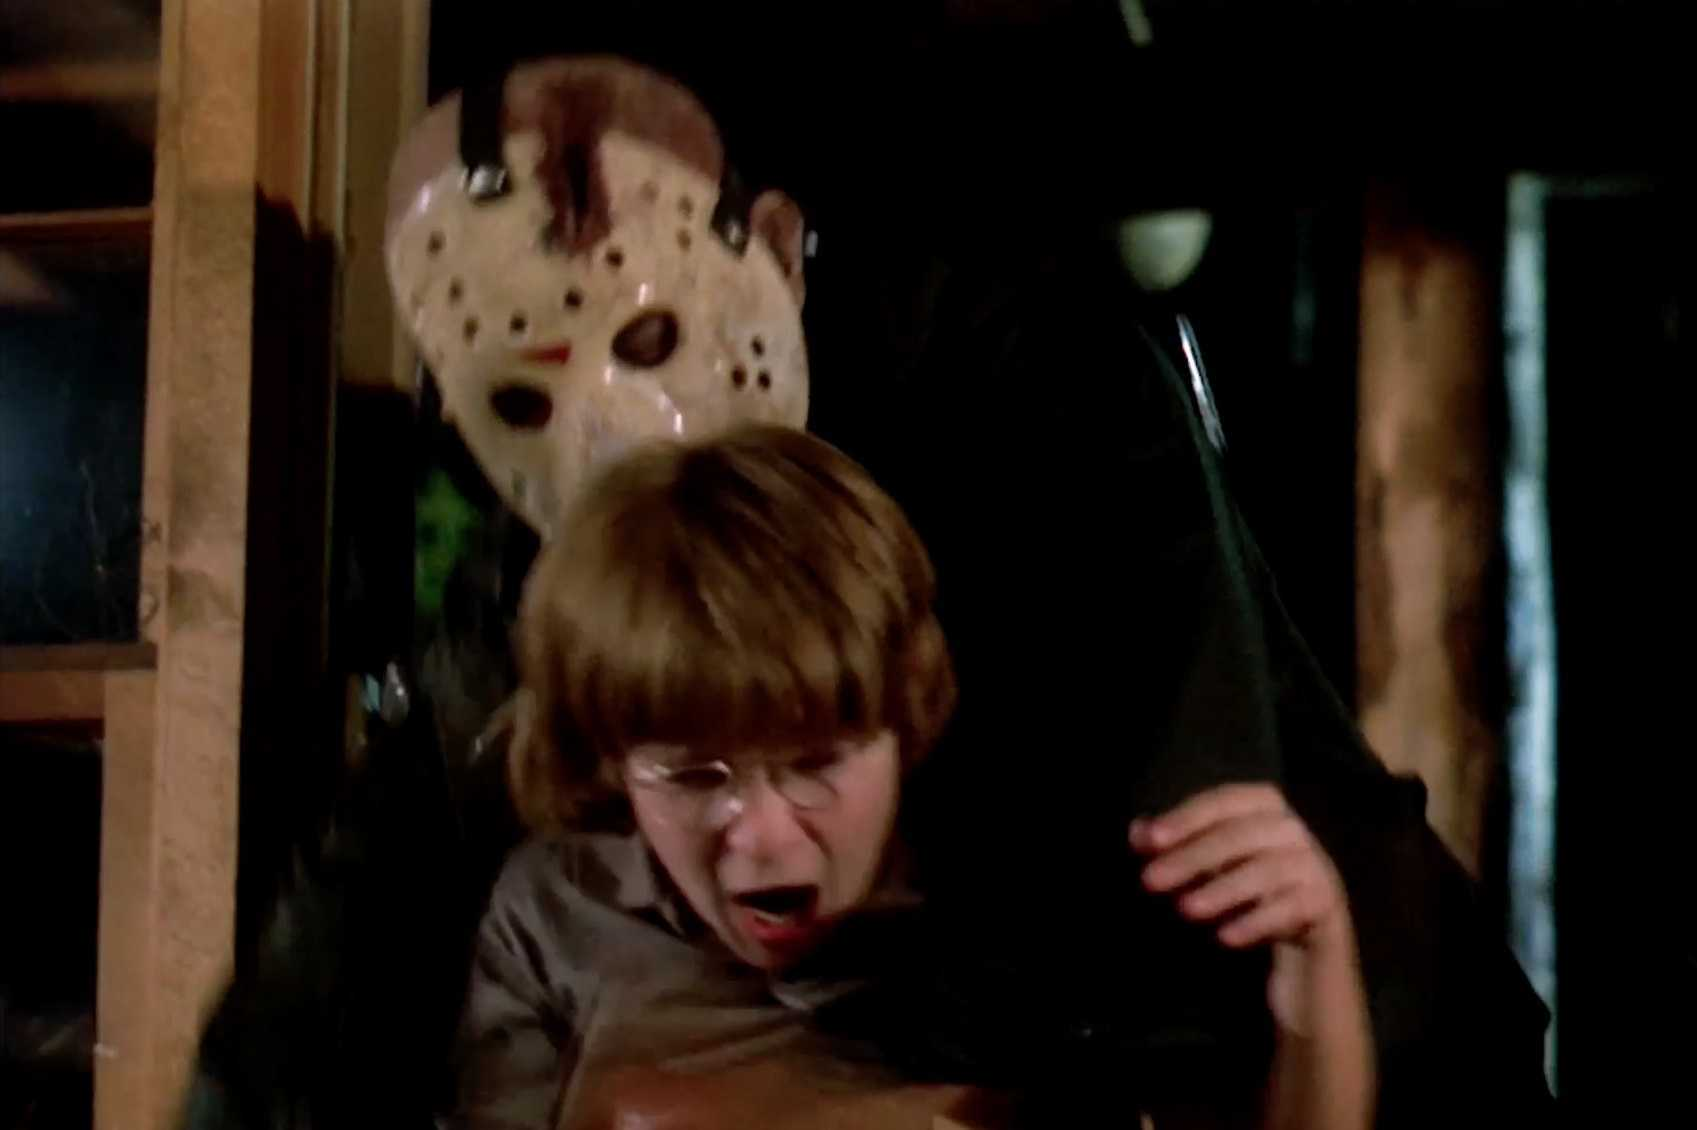 Jason Voorhees (Ted White) attacks young Corey Feldman in Friday the 13th: The Final Chapter (1984)